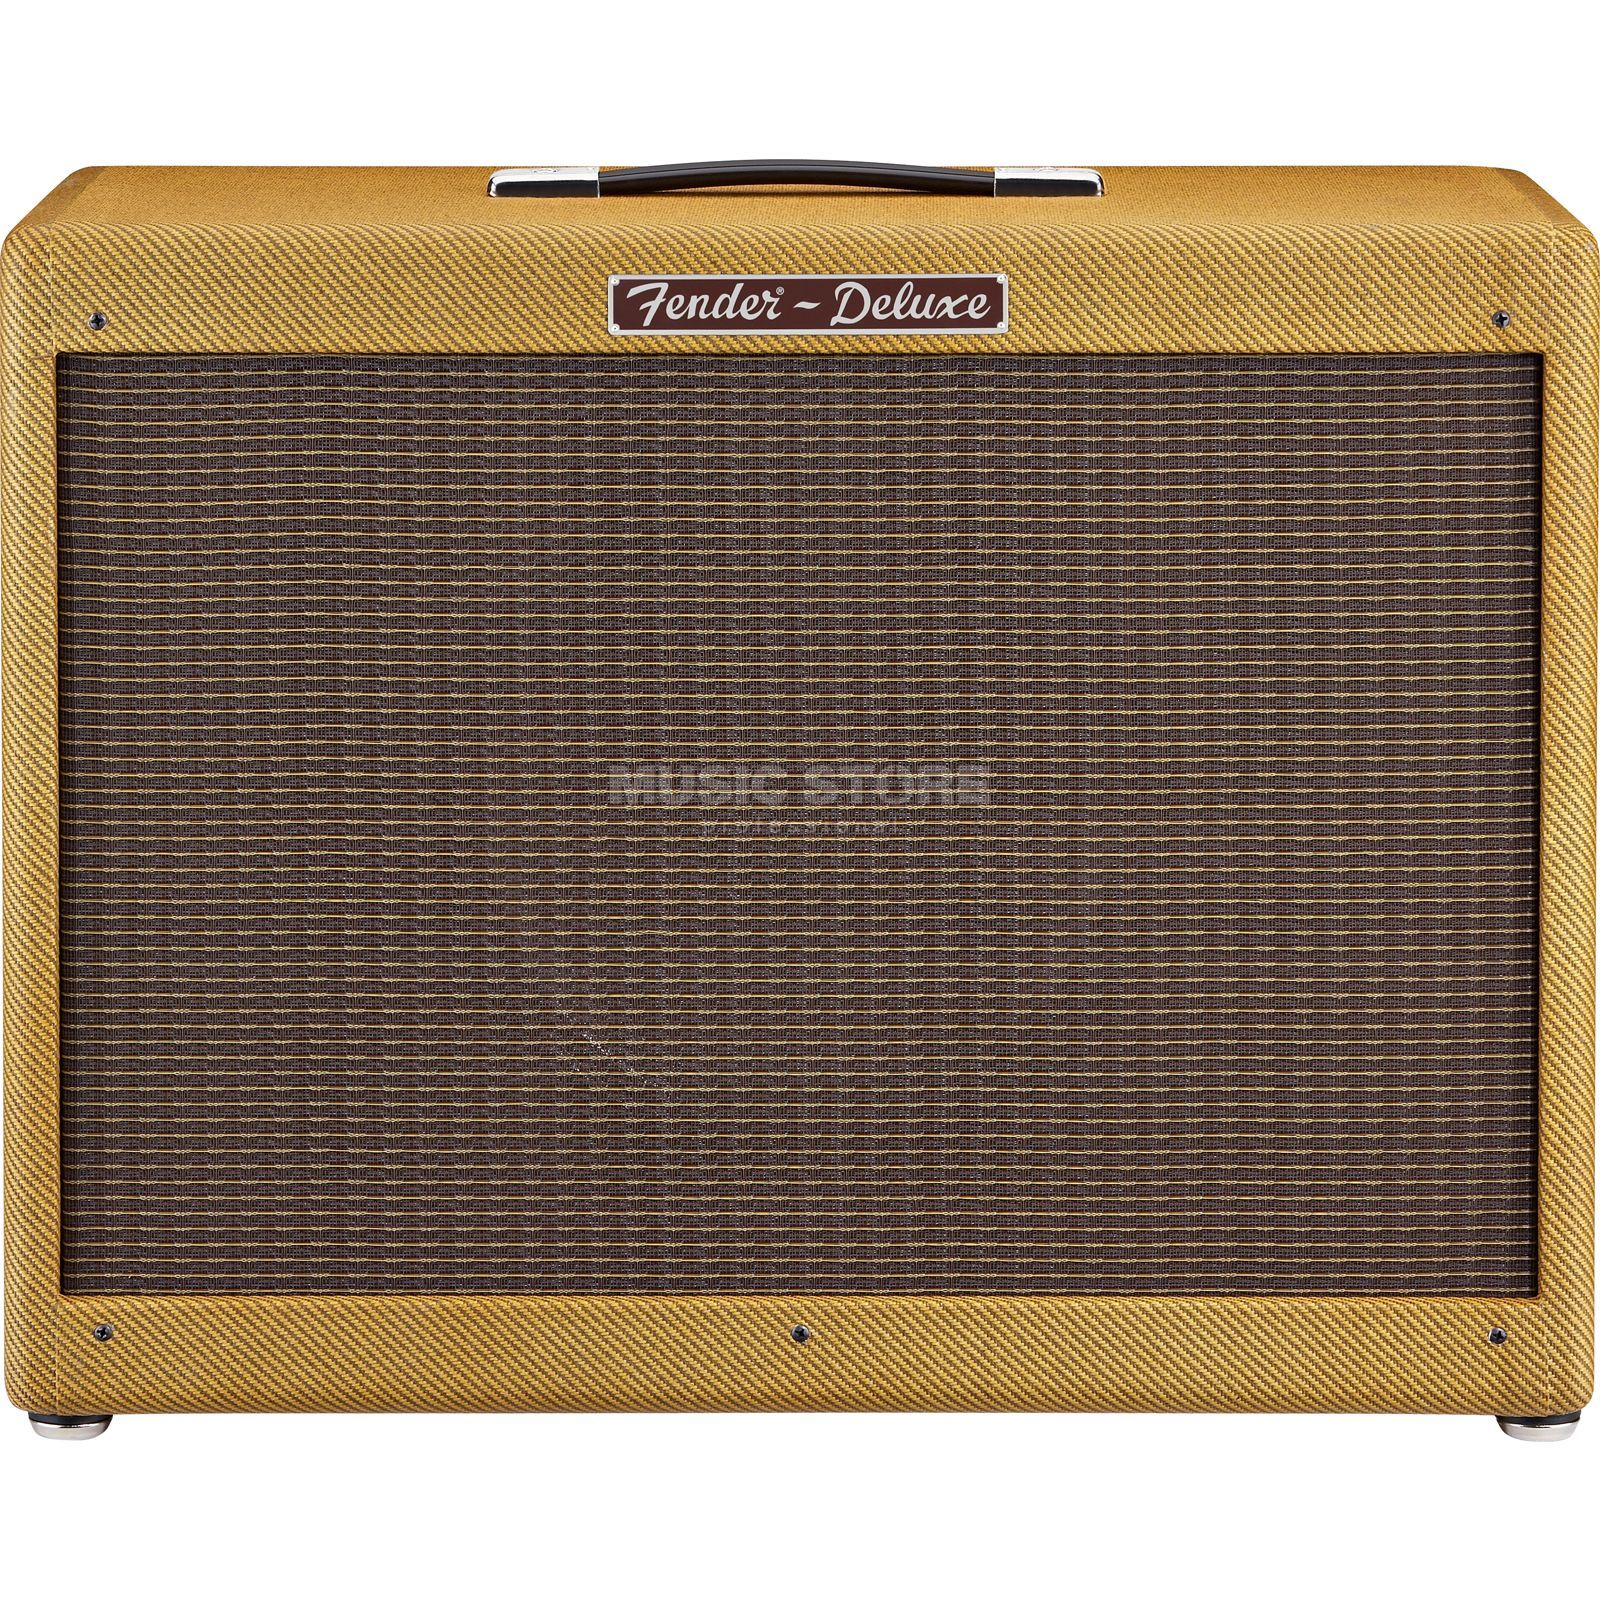 Fender Hot Rod Deluxe 112 Enclosure G uitar Speaker Cabinet   Produktbillede